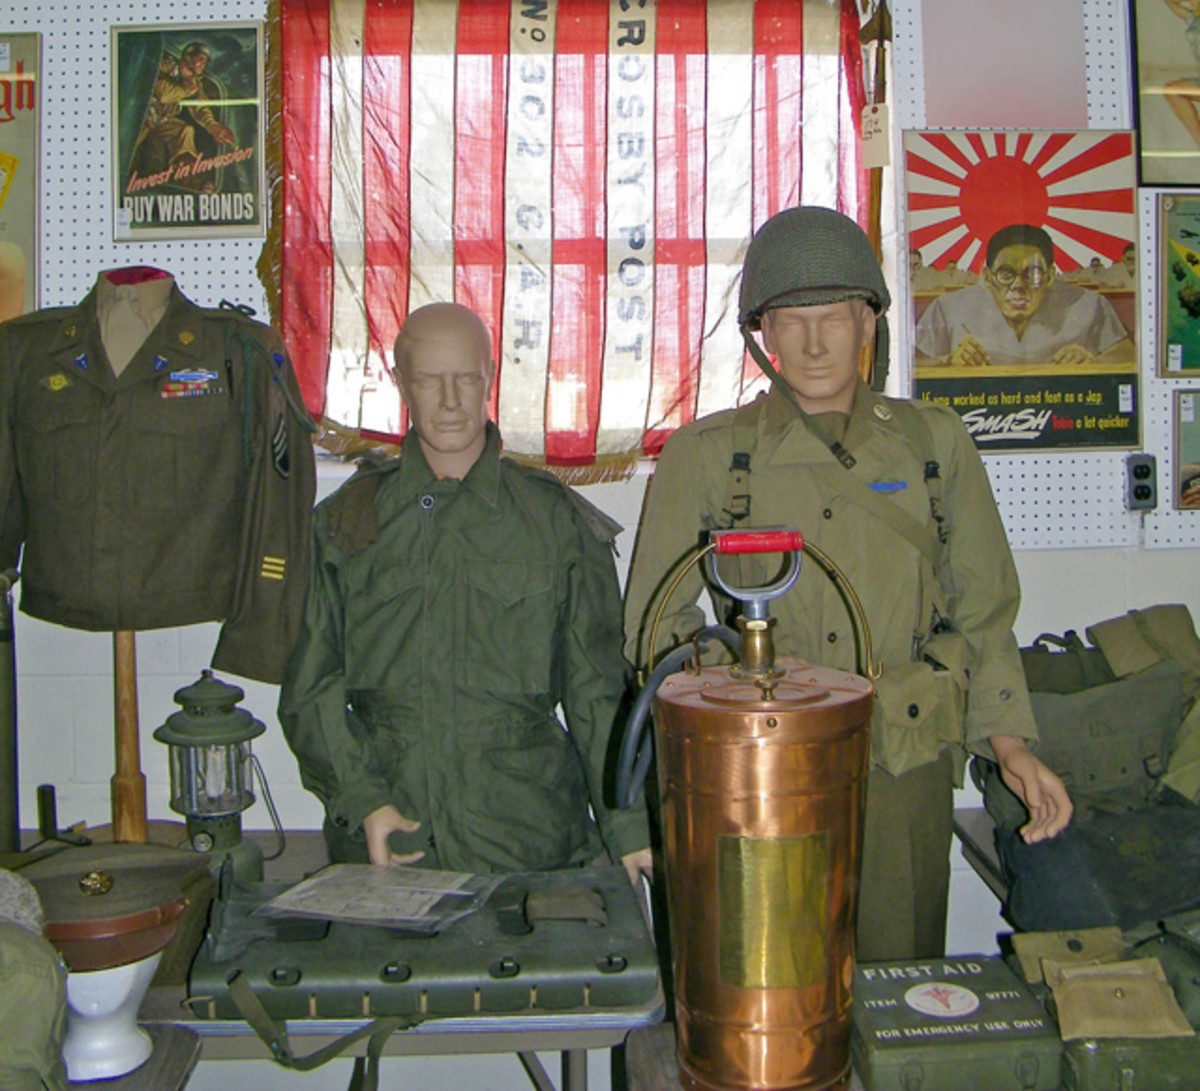 Military uniforms and coveralls saw strong prices.